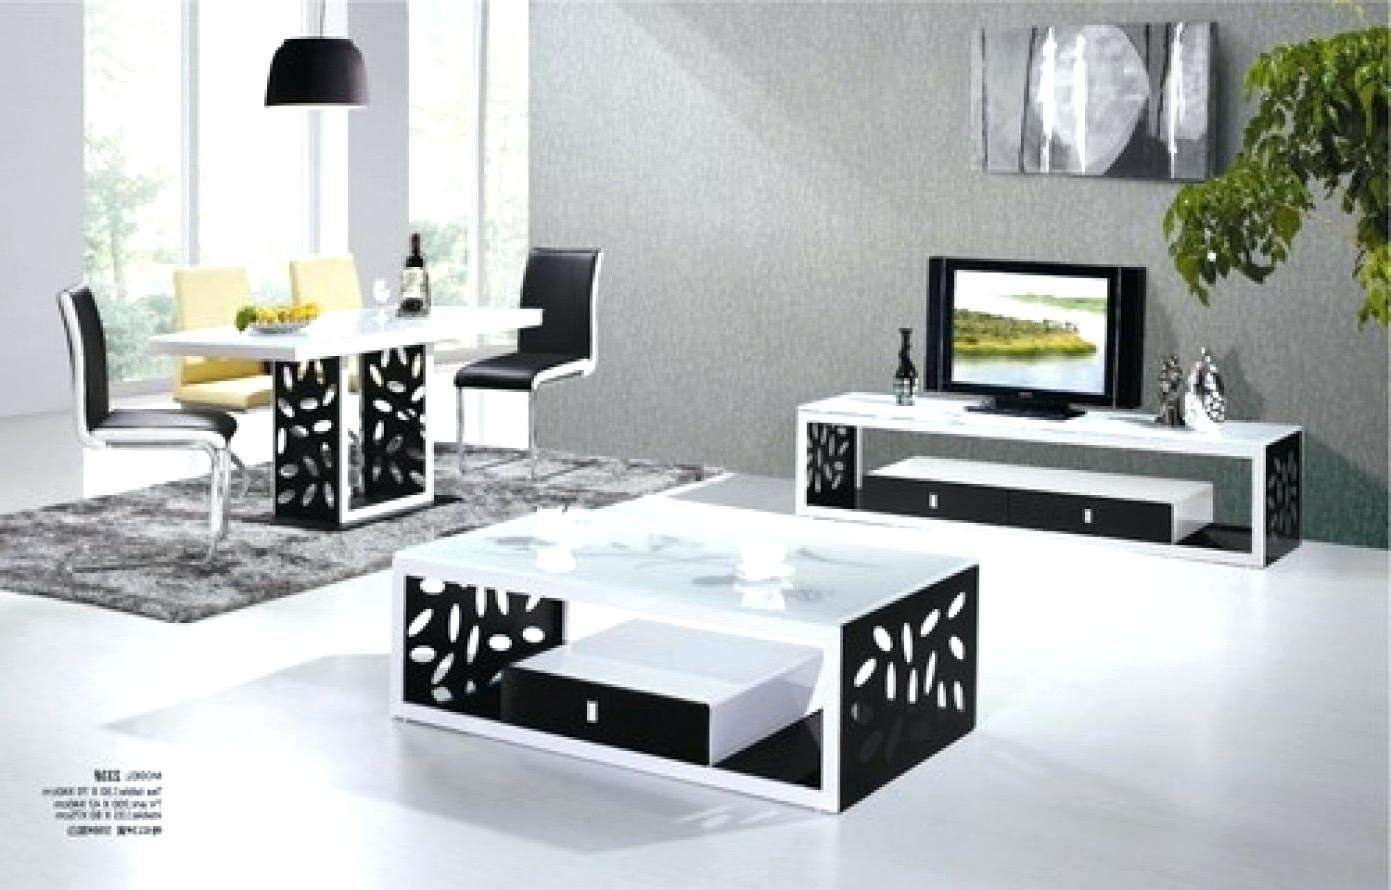 Tv Stand And Coffee Table Set Perfect For Living Room Modern Stand With Regard To Popular Tv Stand Coffee Table Sets (View 19 of 20)